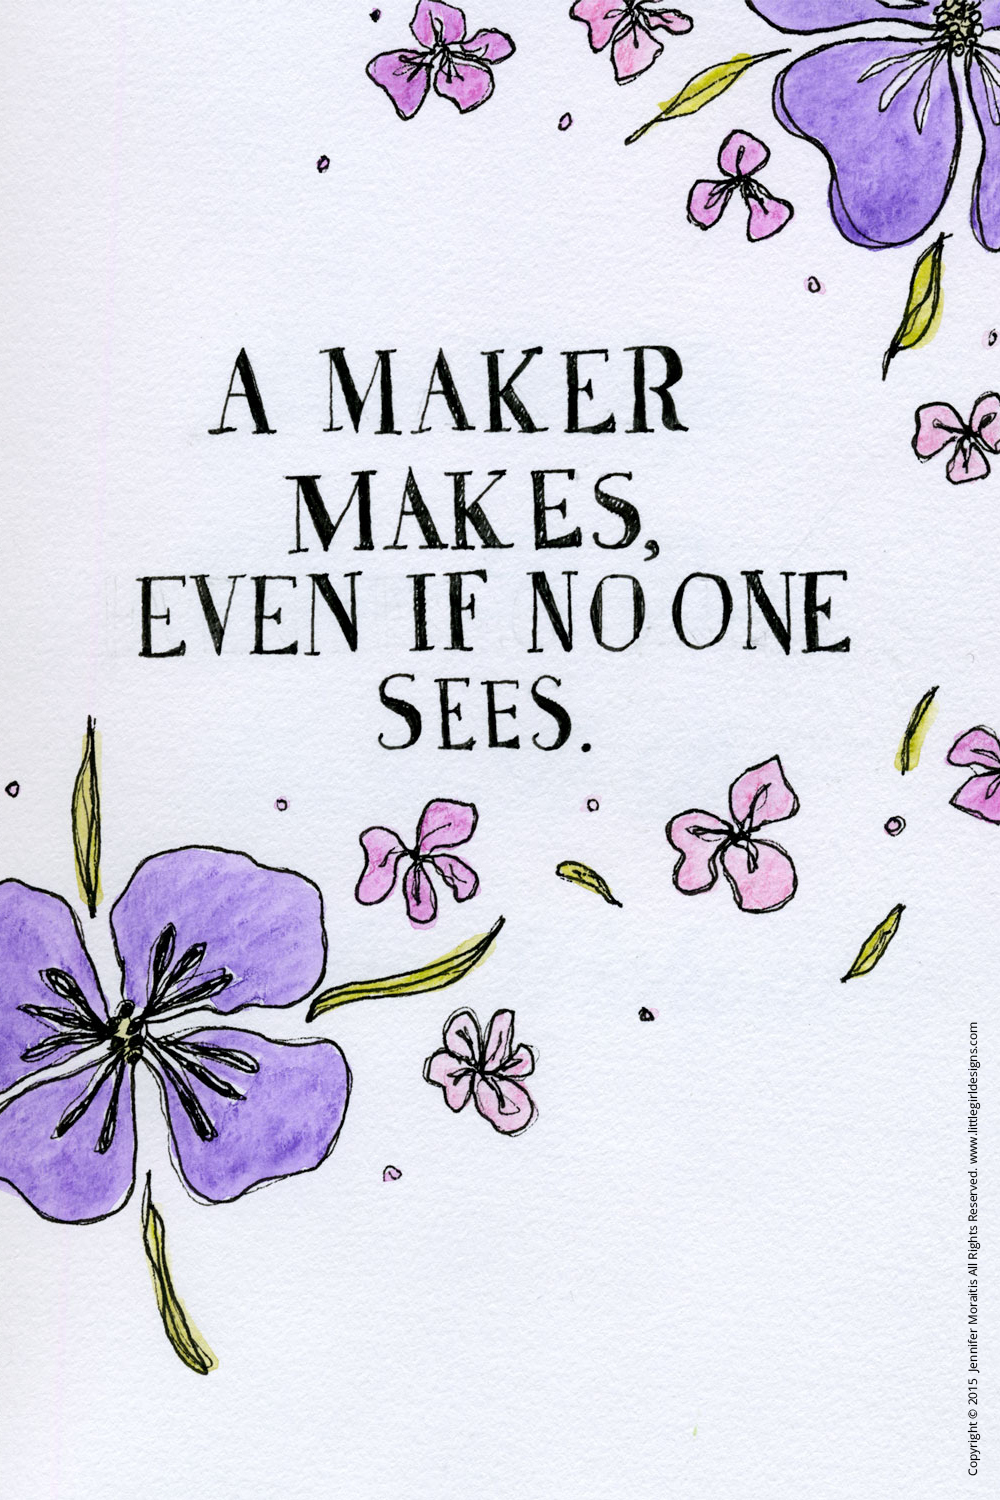 A Maker Makes, Even When No One Sees - do you have to have an incredibly successful creative business in order to feel valued? In order to do what you love? I don't think so...@littlegirldesigns.com